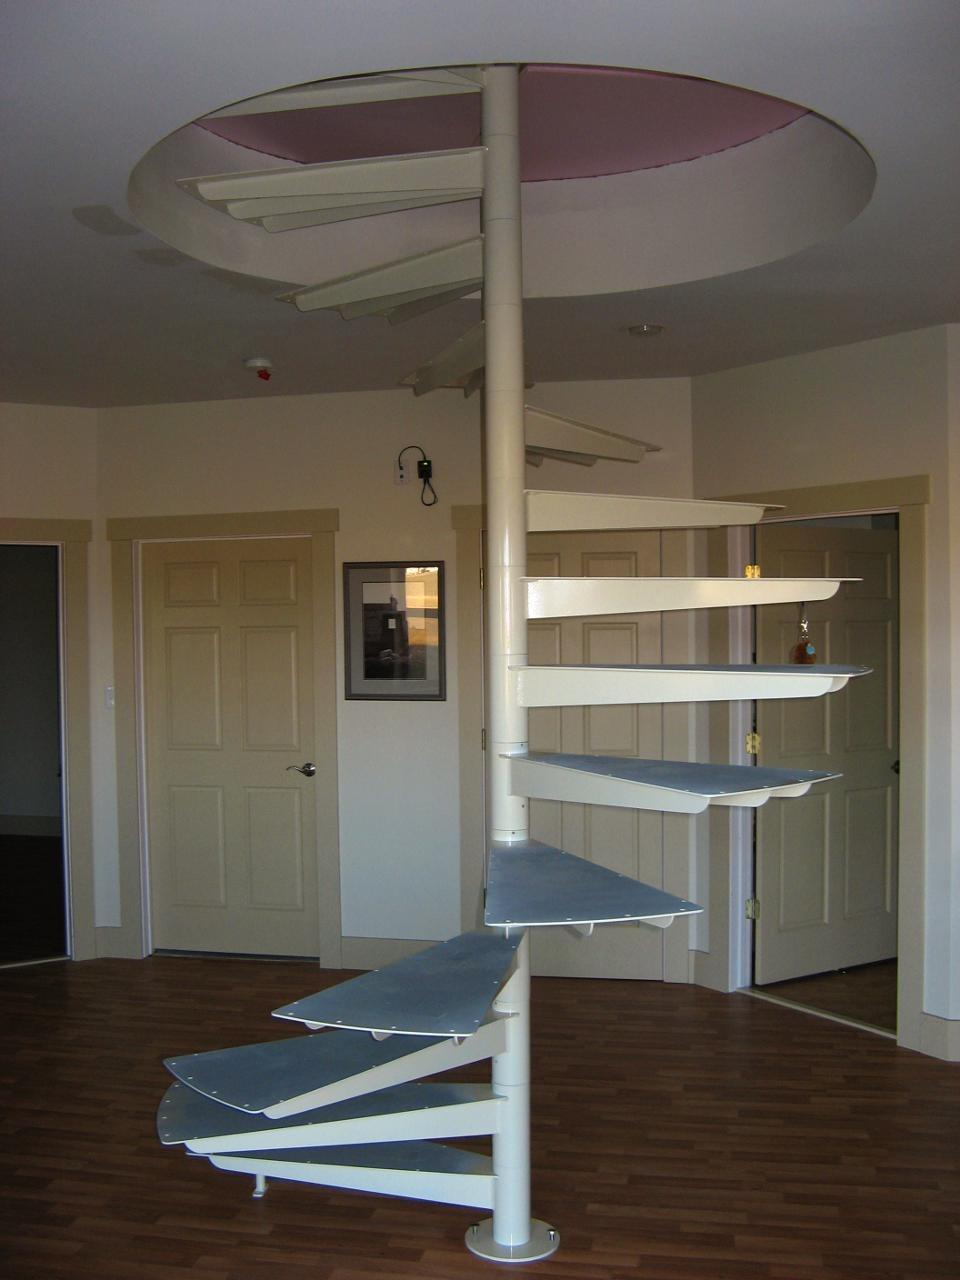 Simple Spiral Ways For Selecting Railings (Image 7 of 10)